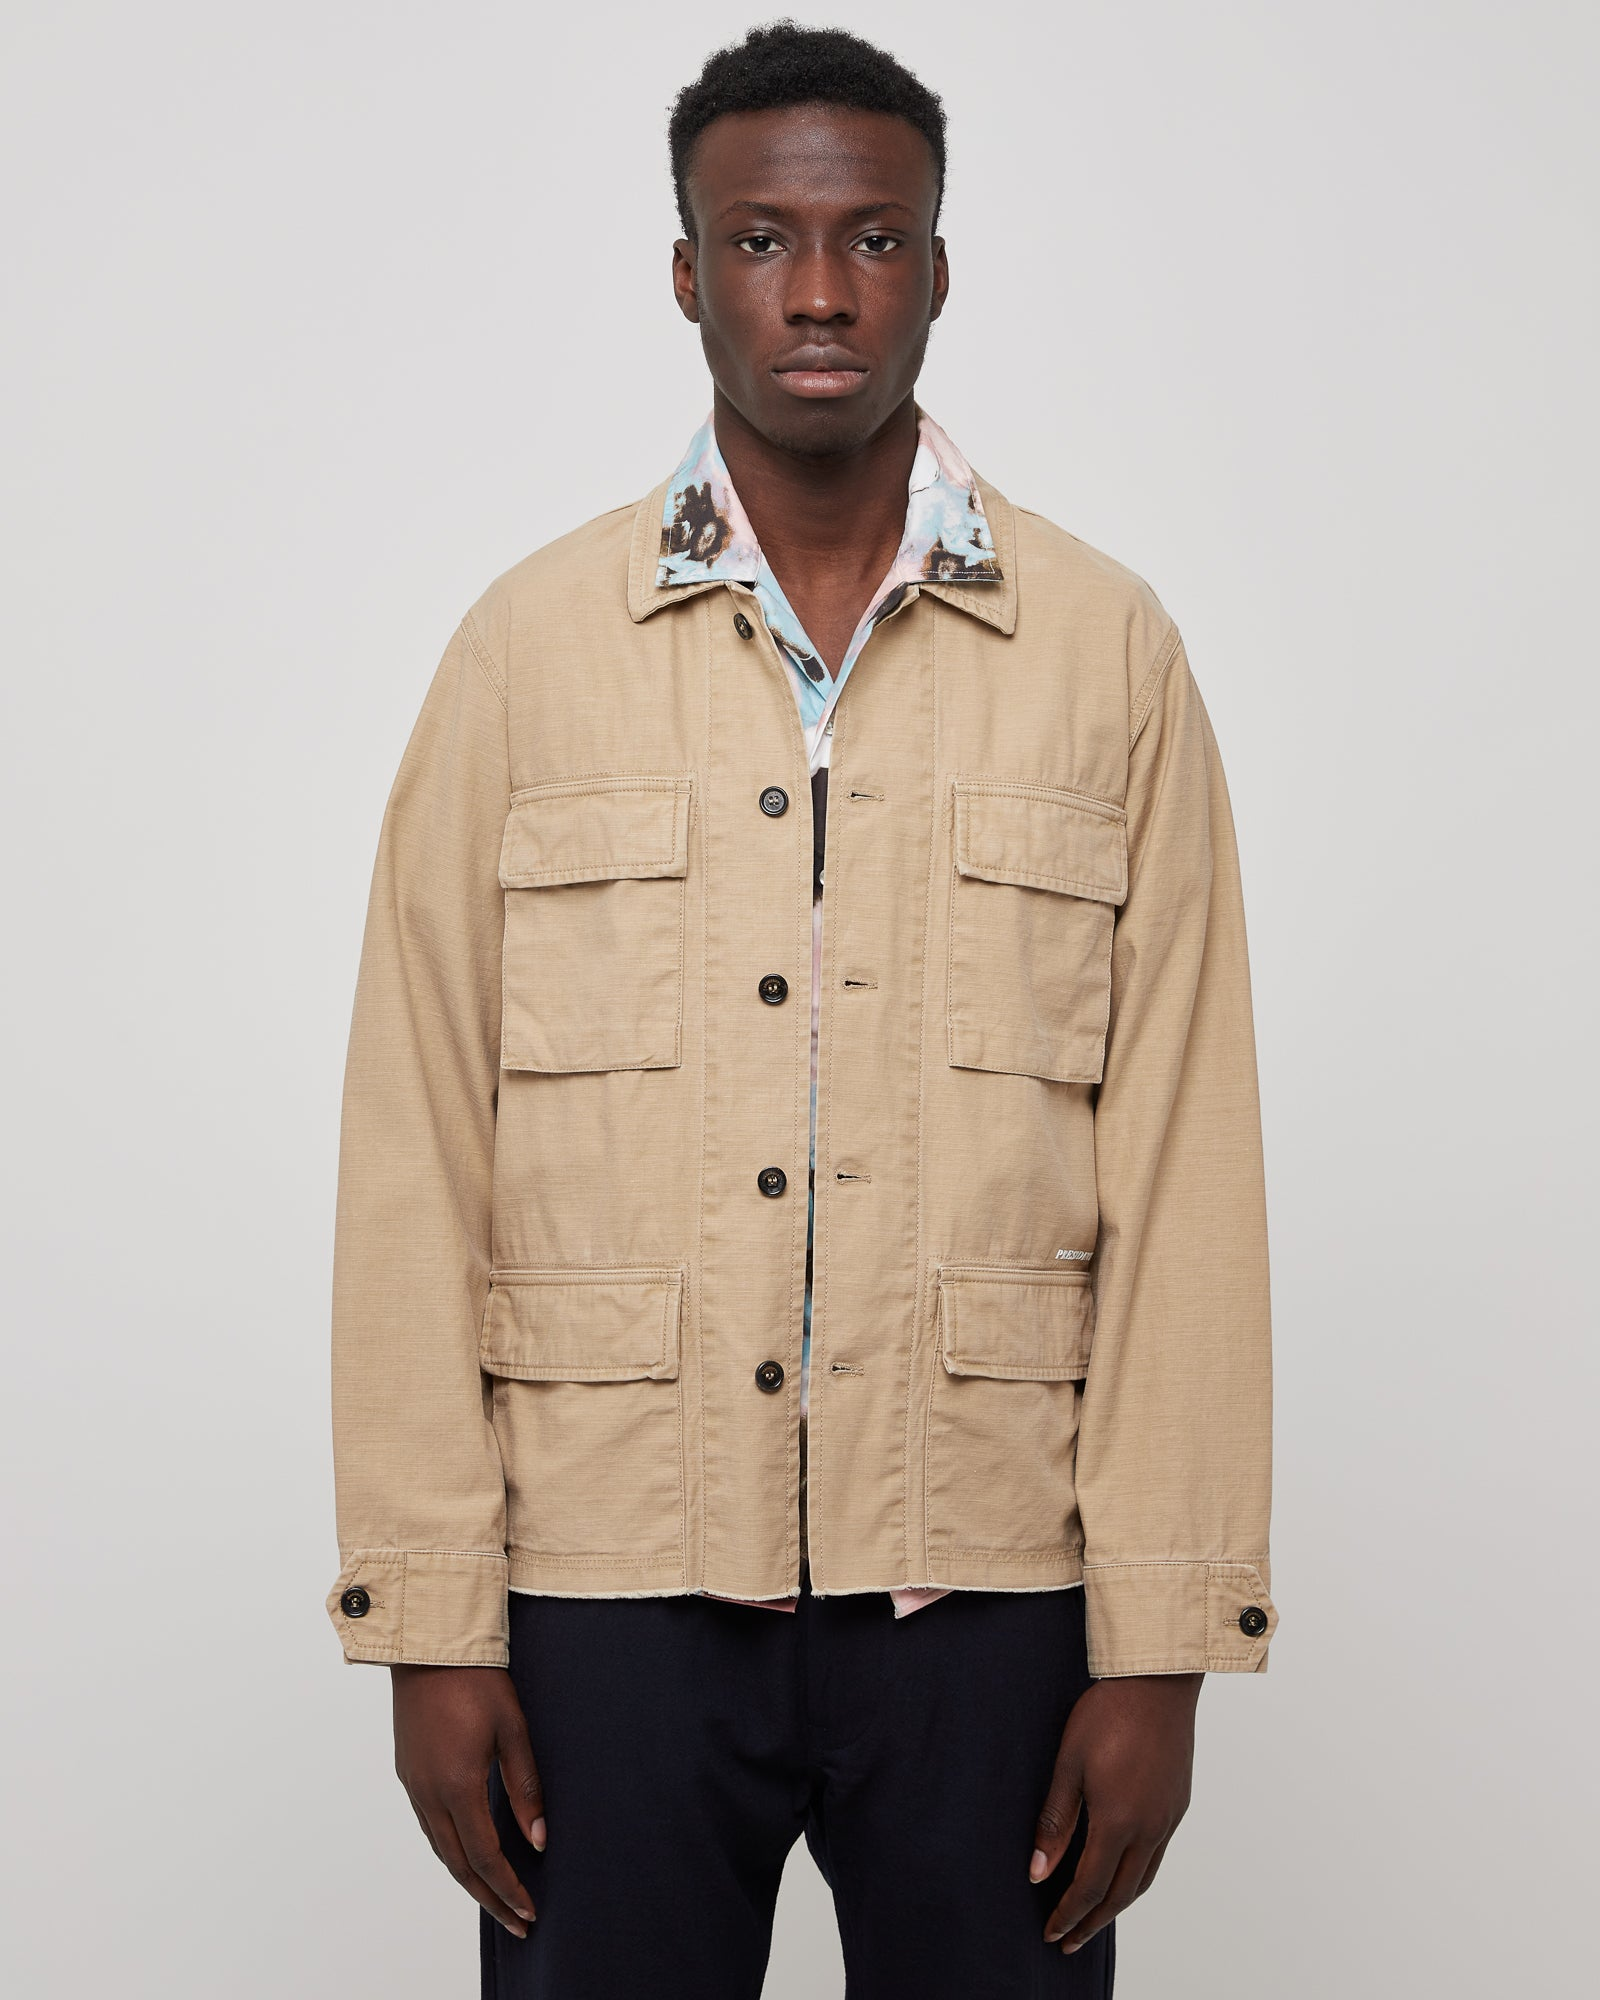 Salvation Jacket in Satin Beige